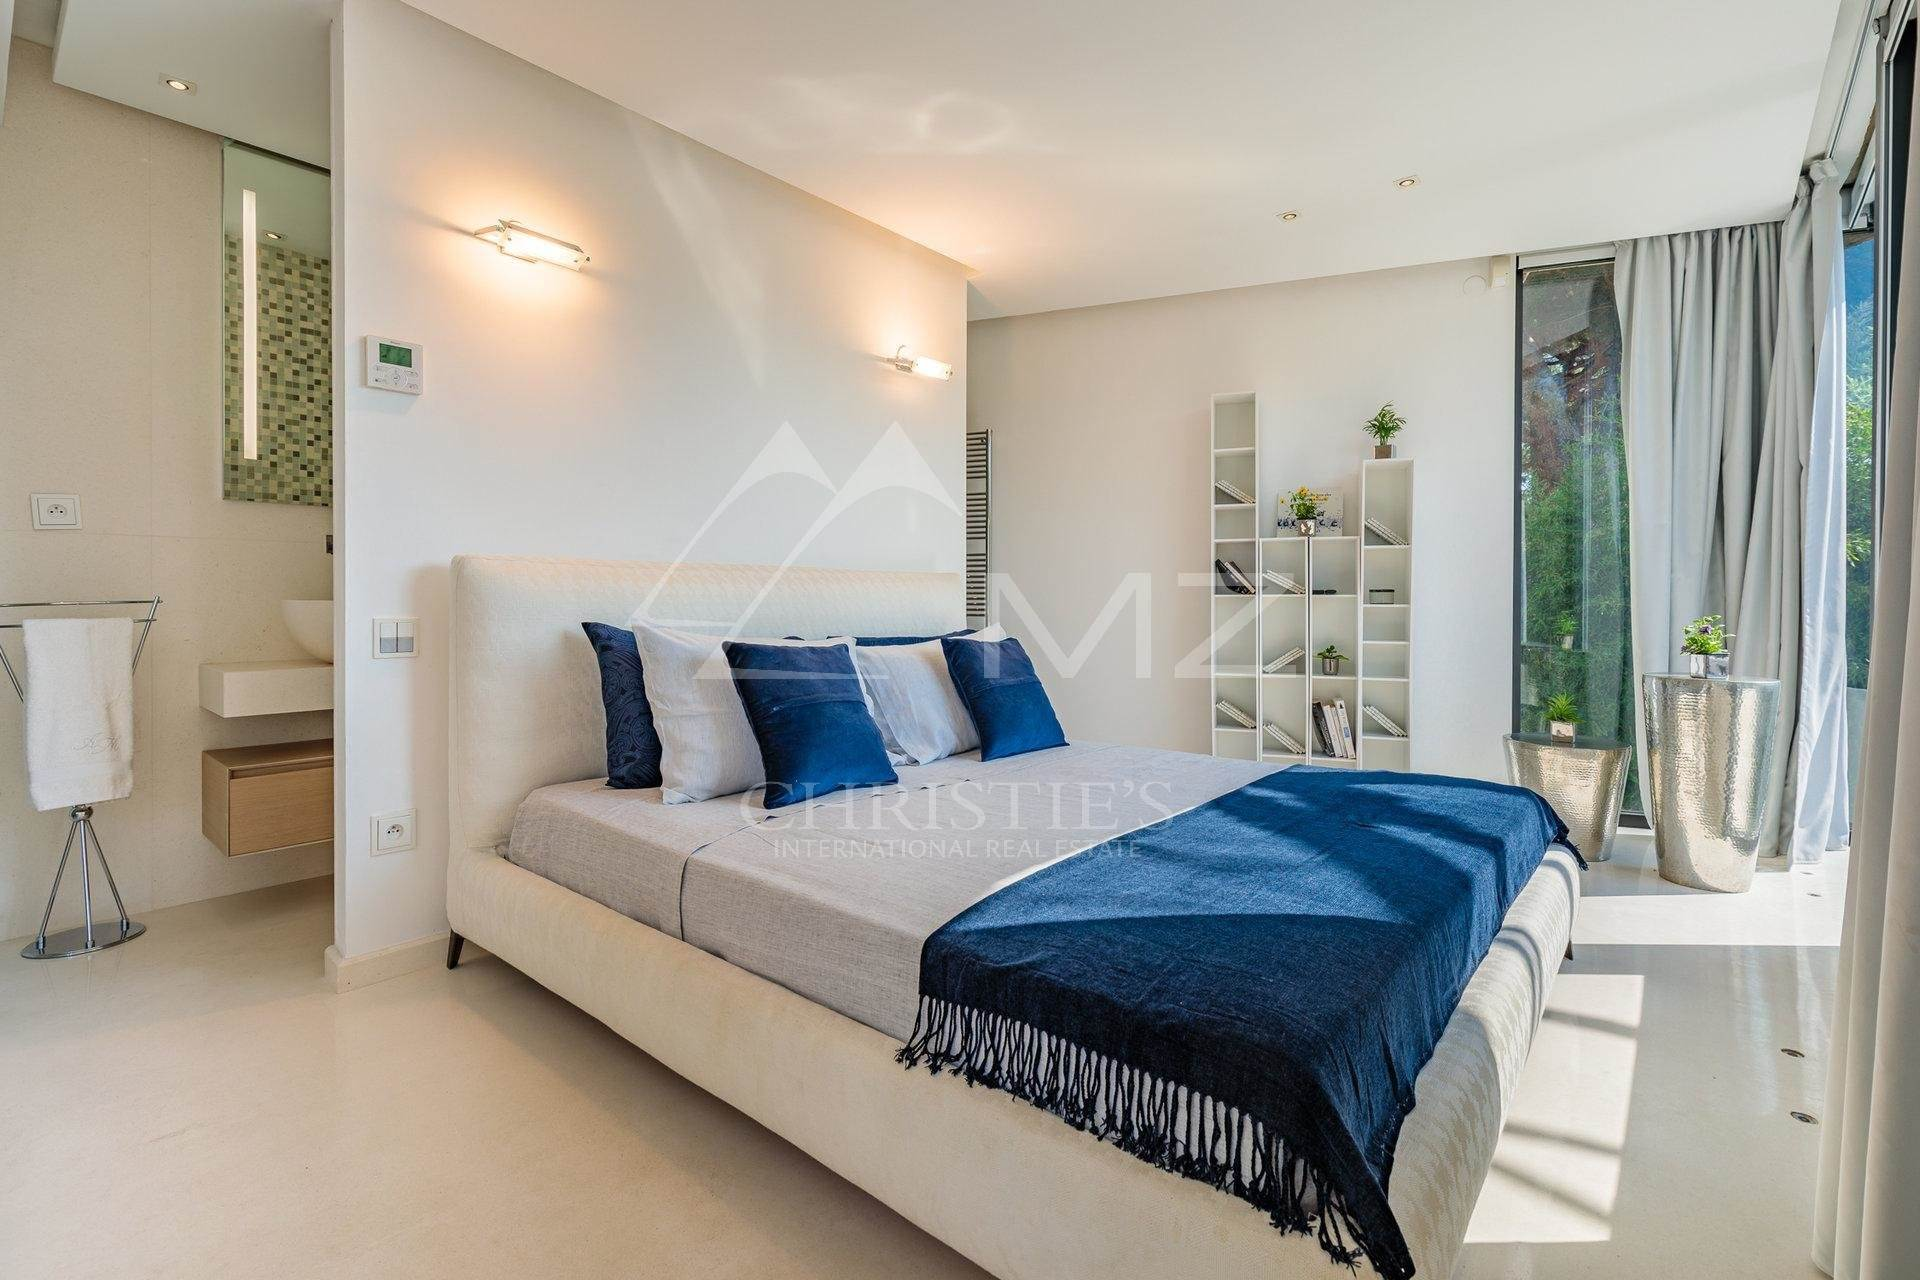 8. Villa/Townhouse for Sale at Pampelonne - Contemporary villa close to the Club 55 Ramatuelle, Var,83350 France